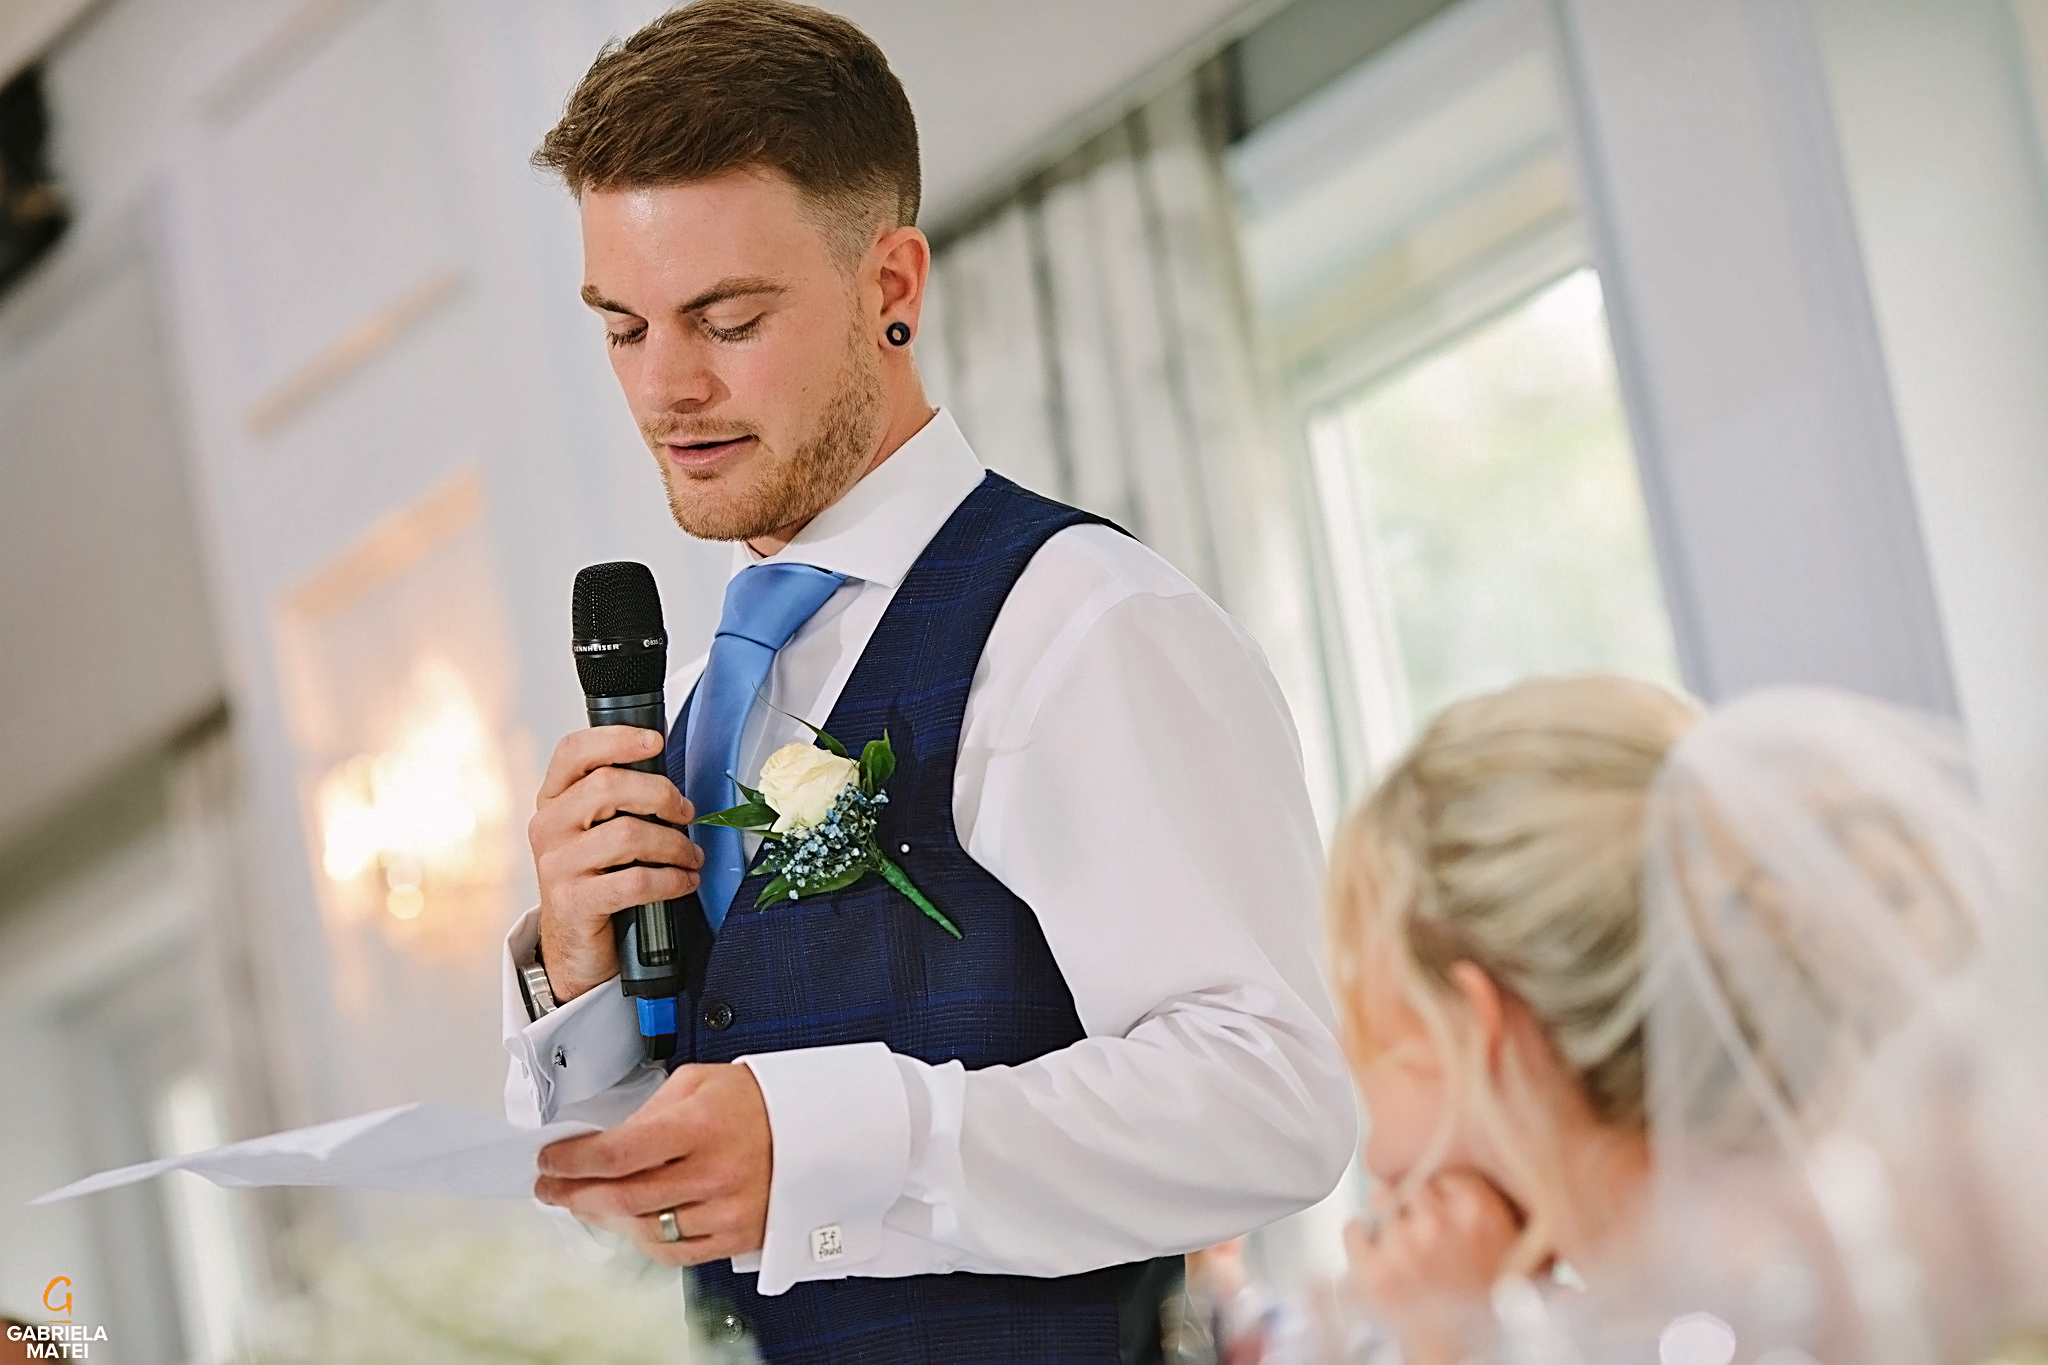 Groom having a speech during wedding reception in London